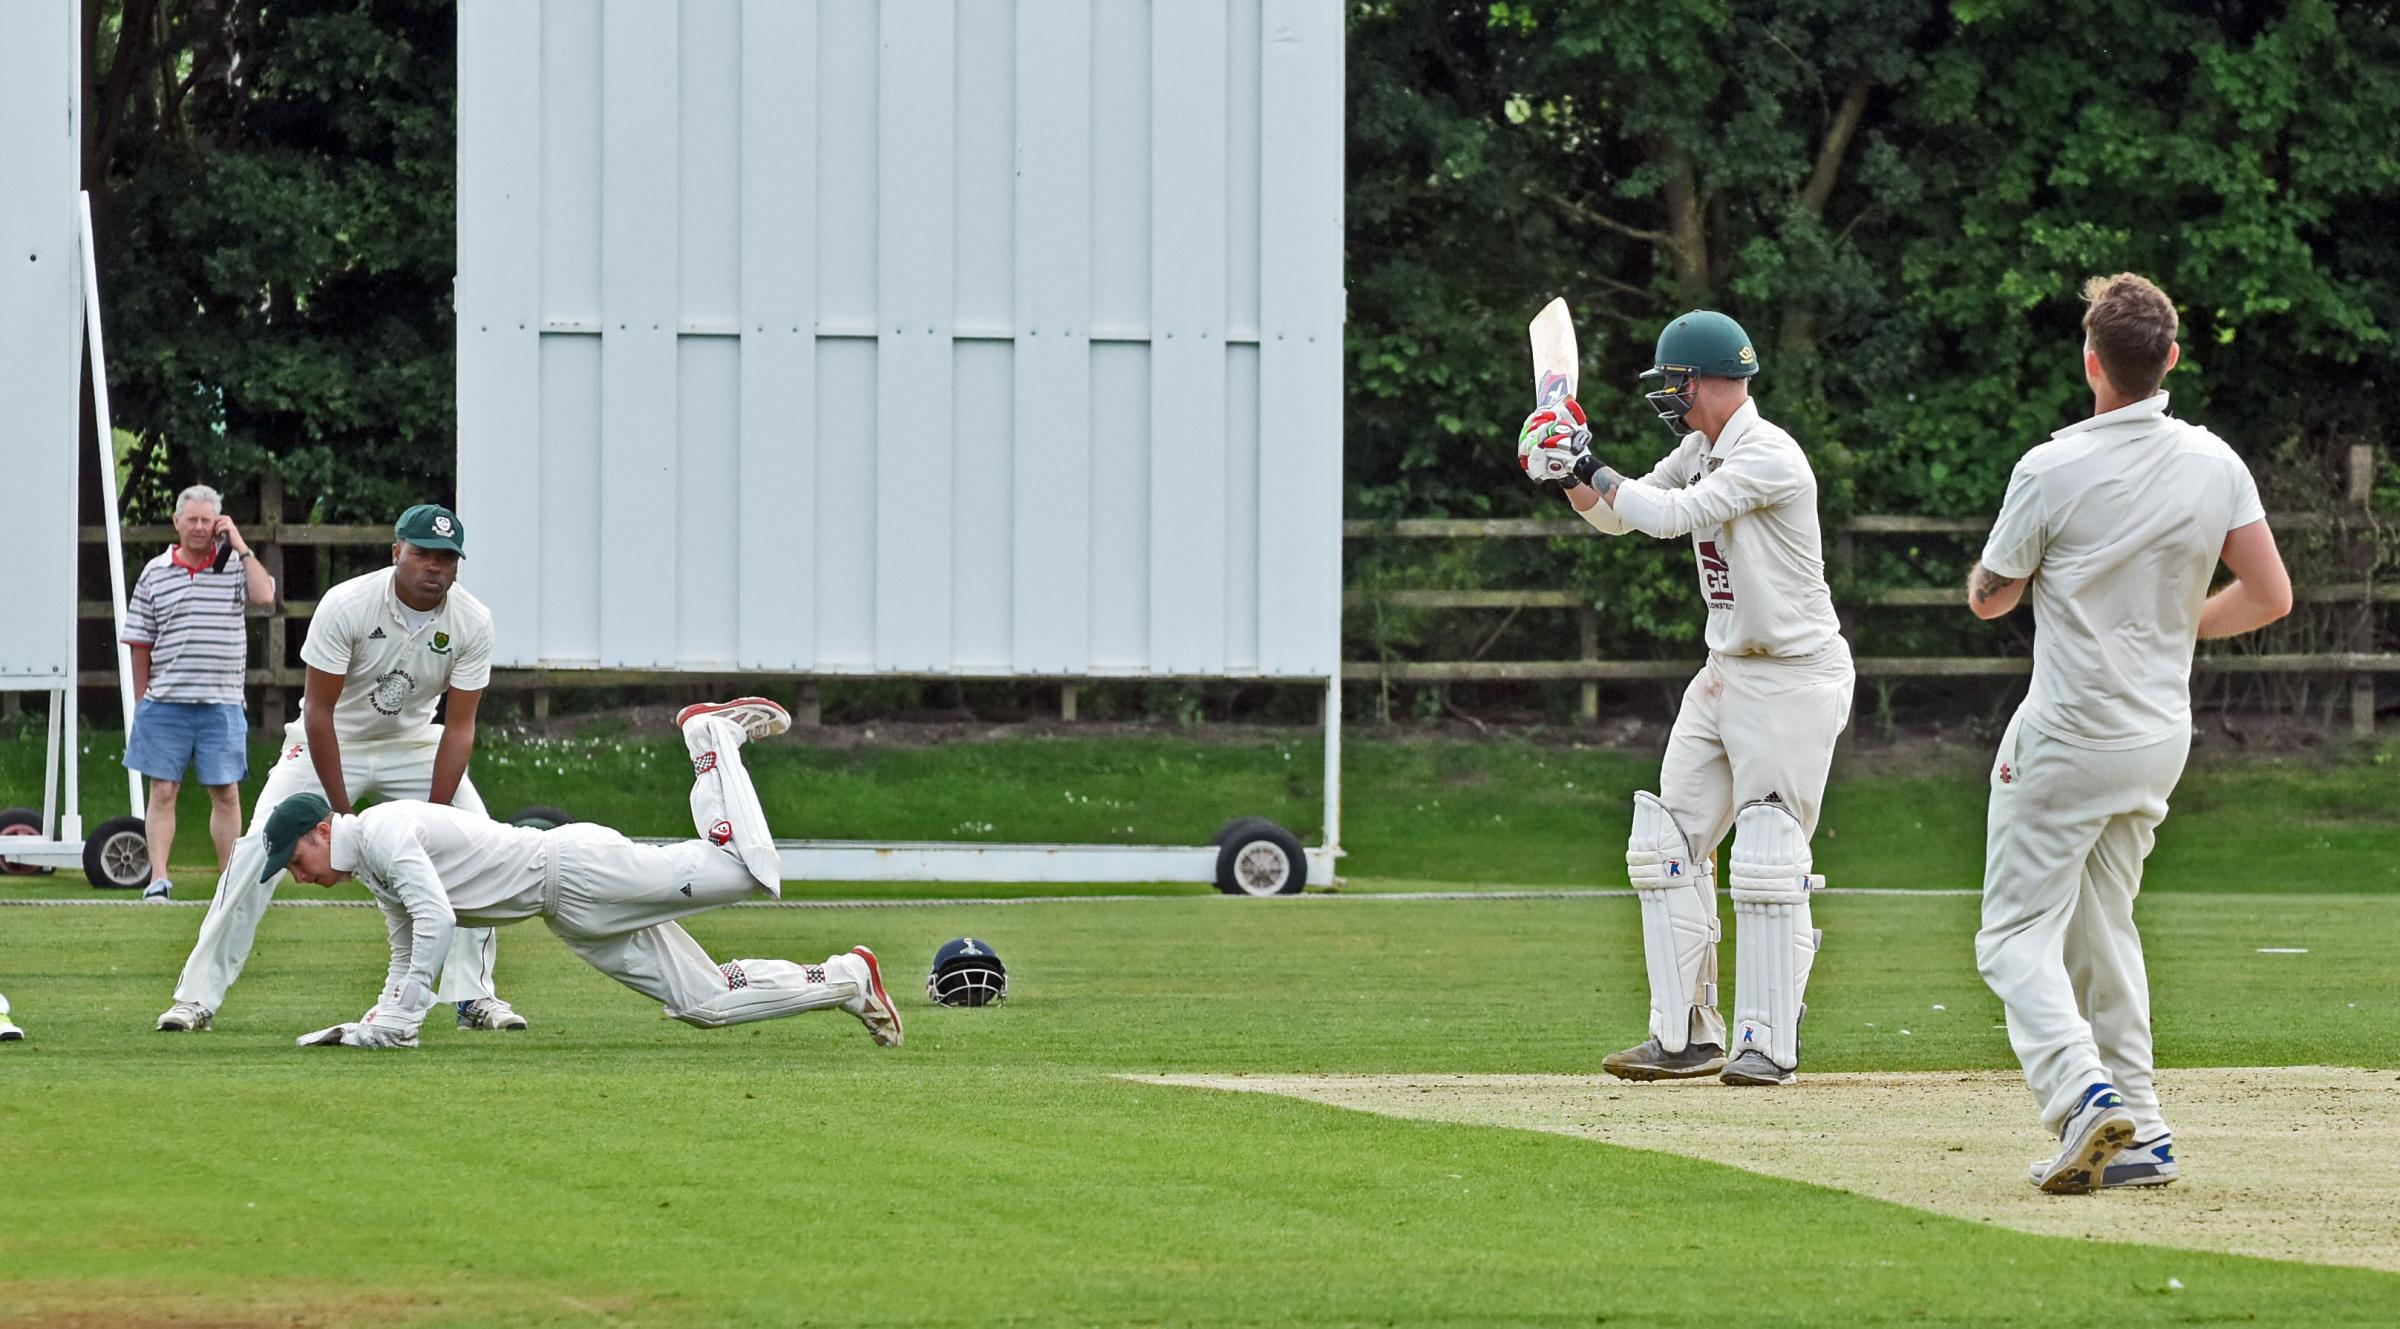 TRIUMPHANT: Batsman Scott Hopkinson, who crashed 118 not out as Clifton Alliance walloped Newburgh to seal the Pilmoor Evening League crown